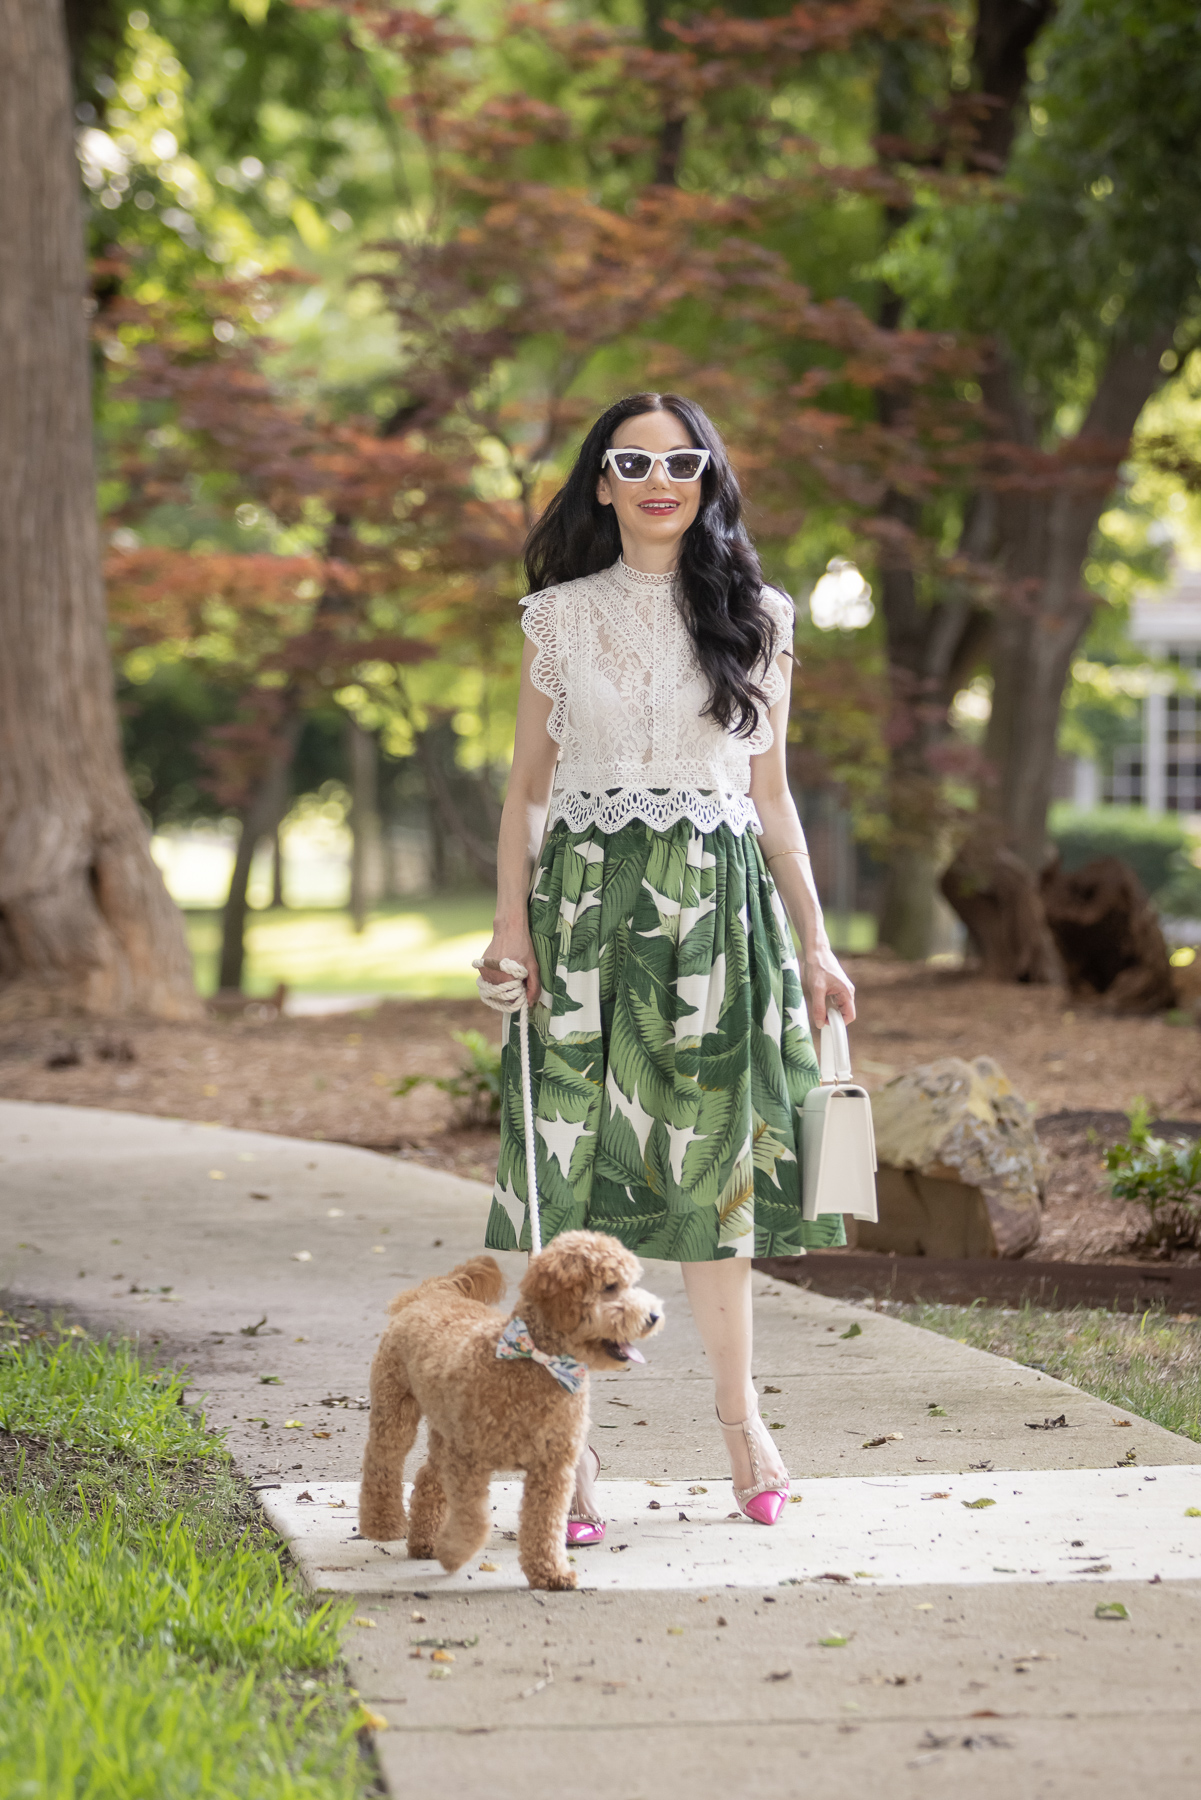 Palm Print Skirt, Neely & Chloe Bag, White Lace Top, Pink Pumps, Fashion Blogger, Fall Transitional Style, Mini Goldendoodle puppy, Fashion Blogger   Palm Print Skirt by popular Dallas fashion blog, Pretty Little Shoppers: image of a woman walking her dog outside and wearing a palm print skirt, lace cropped top, and pink heels.